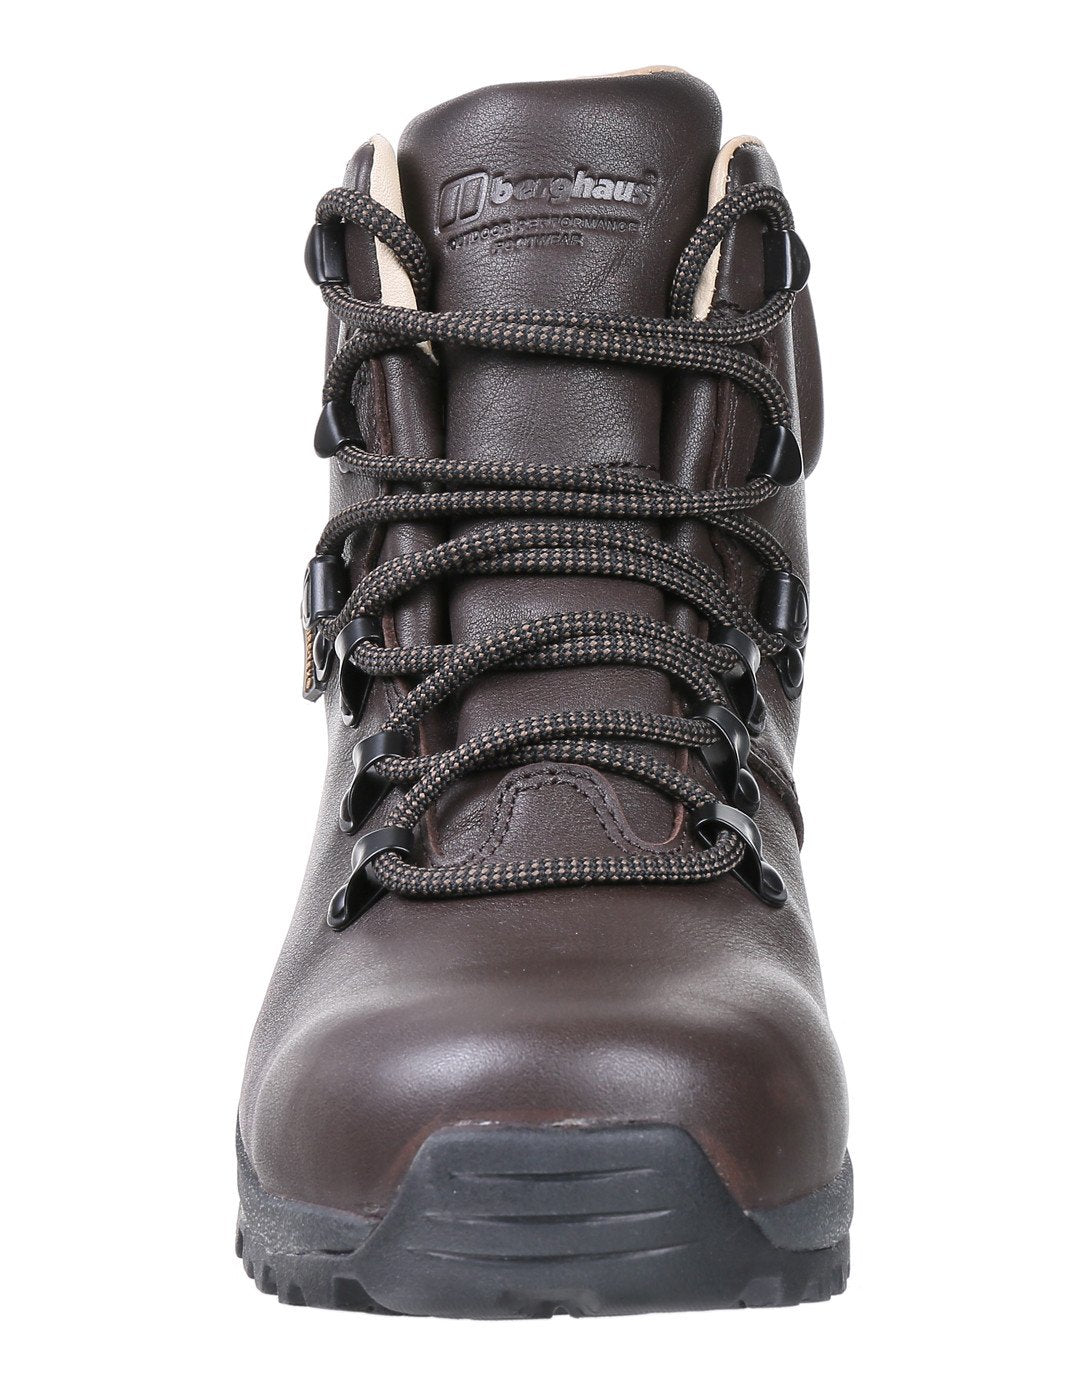 4b5f9ce6cb7 Womens Supalite II GTX Walking Boot - Chocolate Brown